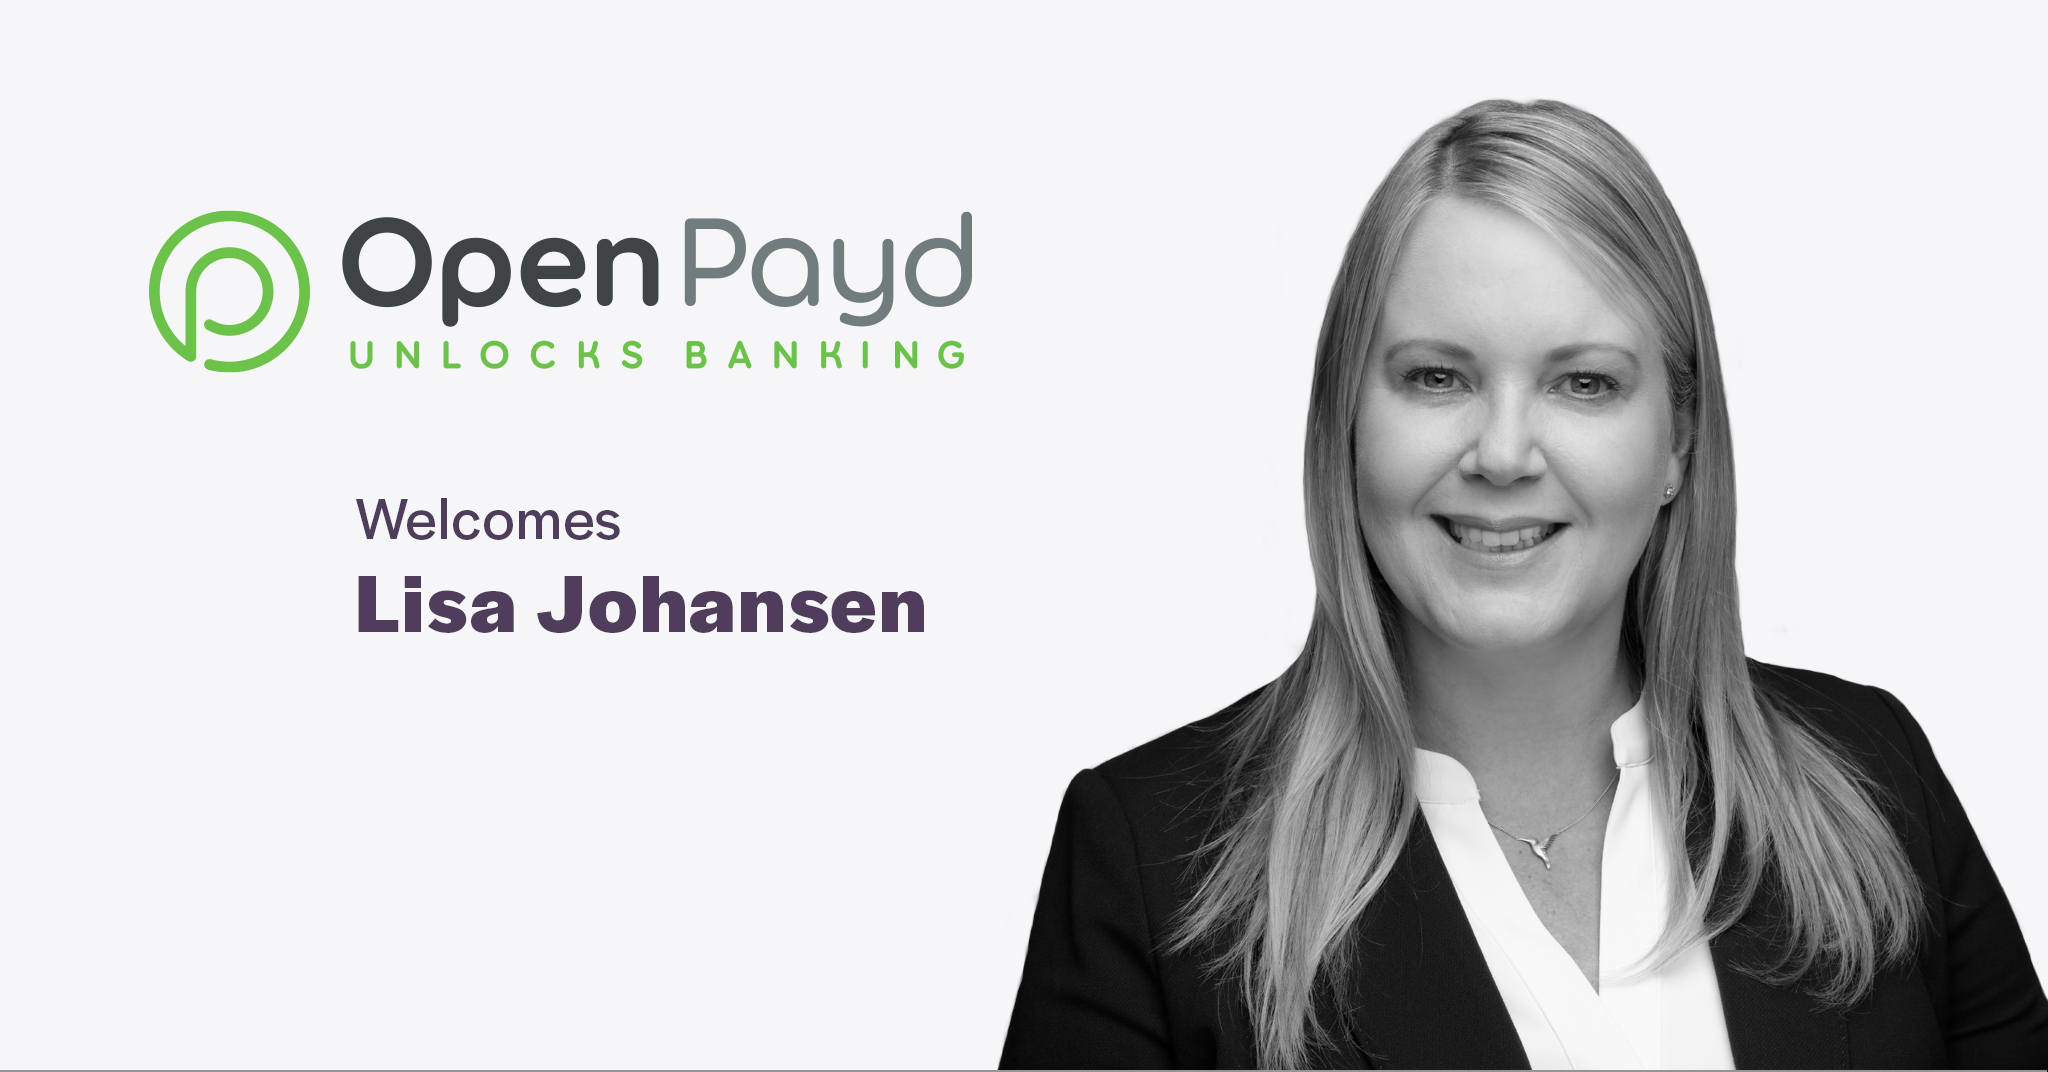 OpenPayd, a leading banking and payment solution platform, appoints Lisa Johansen as Chief Compliance Officer and MLRO